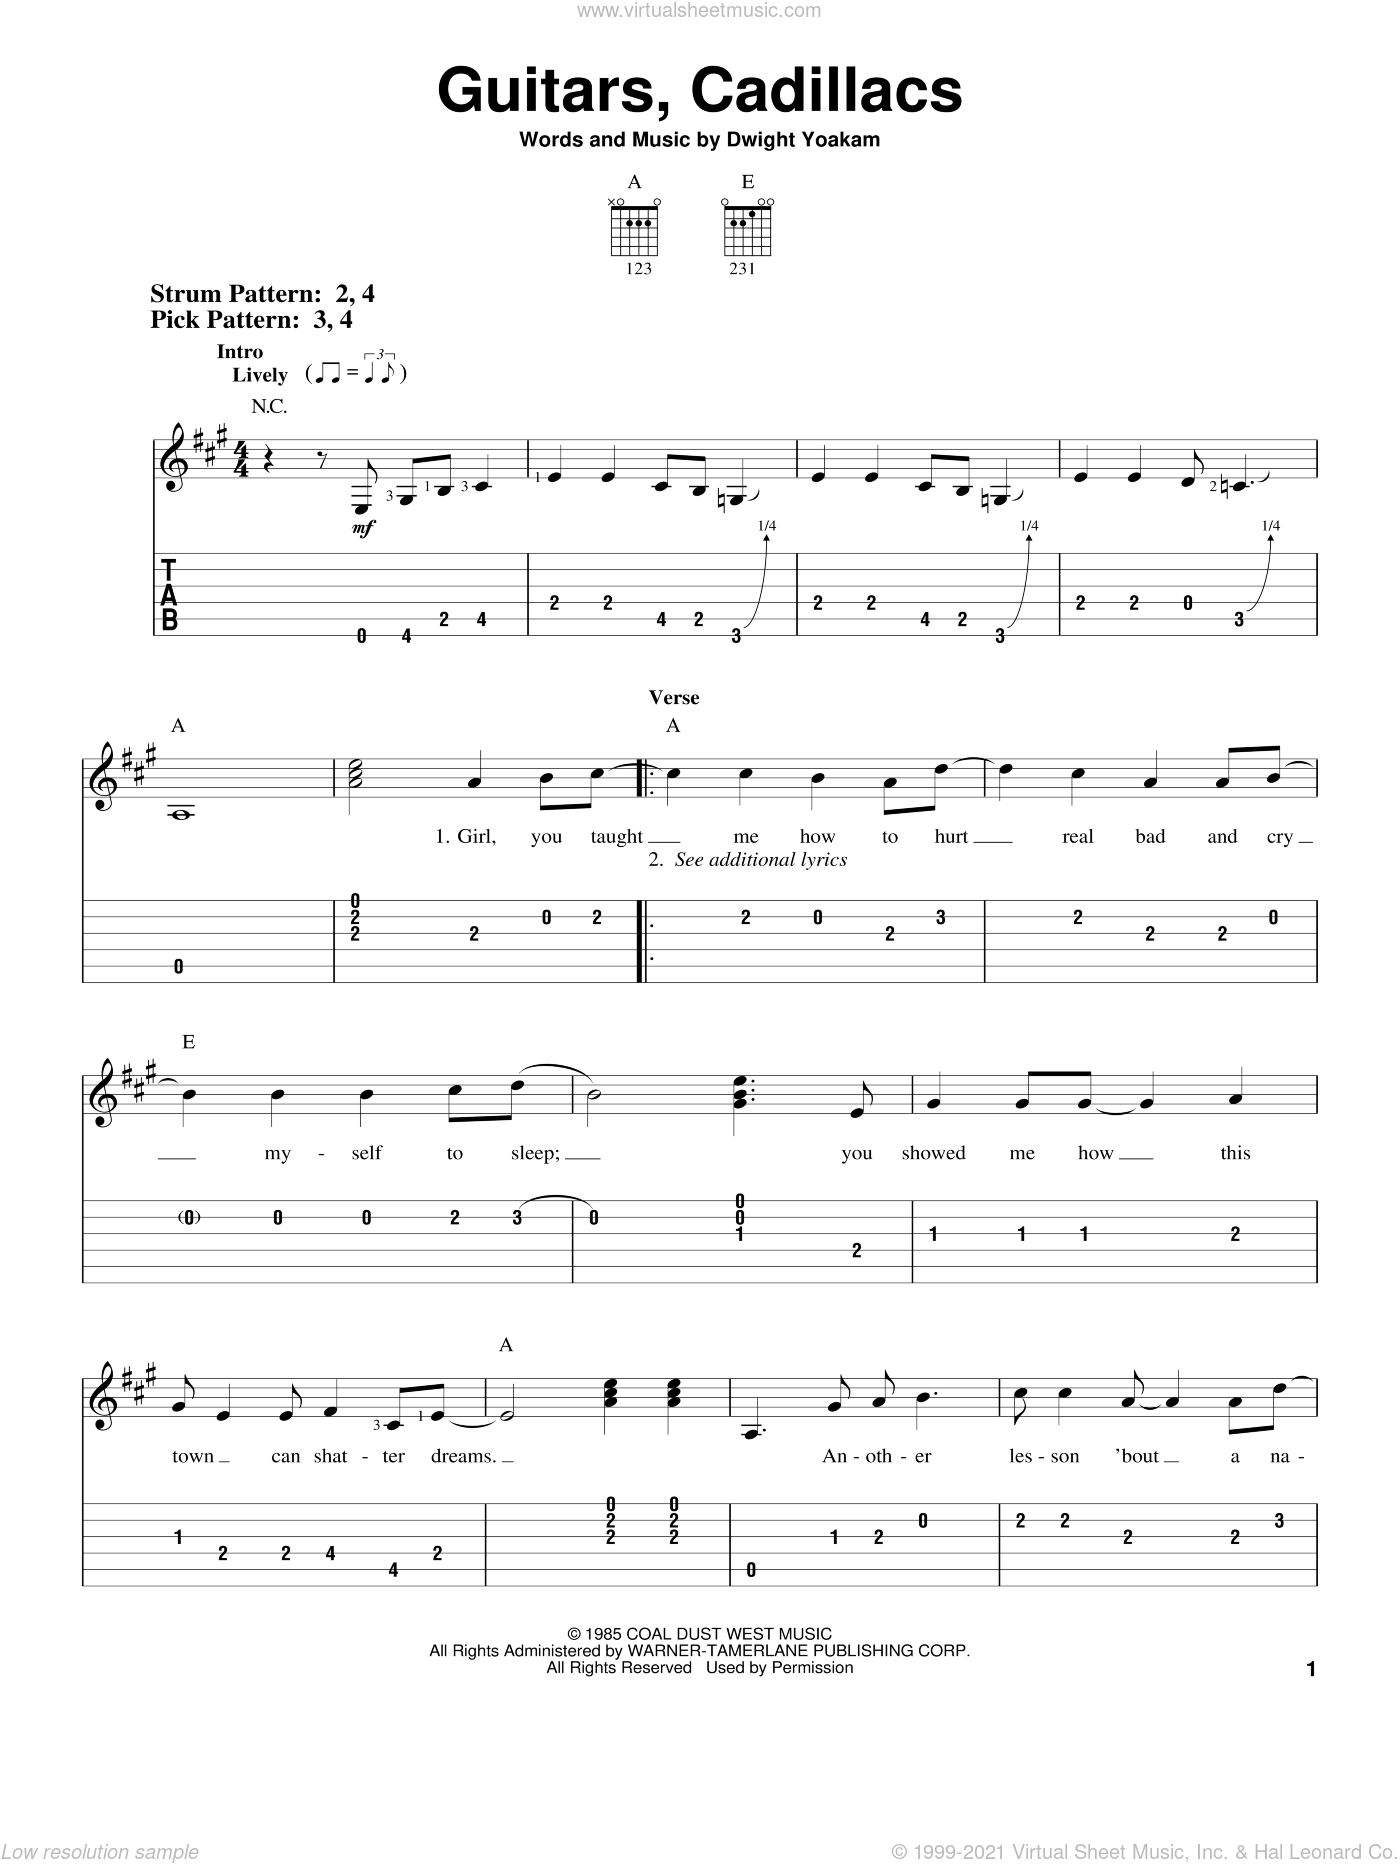 Guitars, Cadillacs sheet music for guitar solo (easy tablature) by Dwight Yoakam